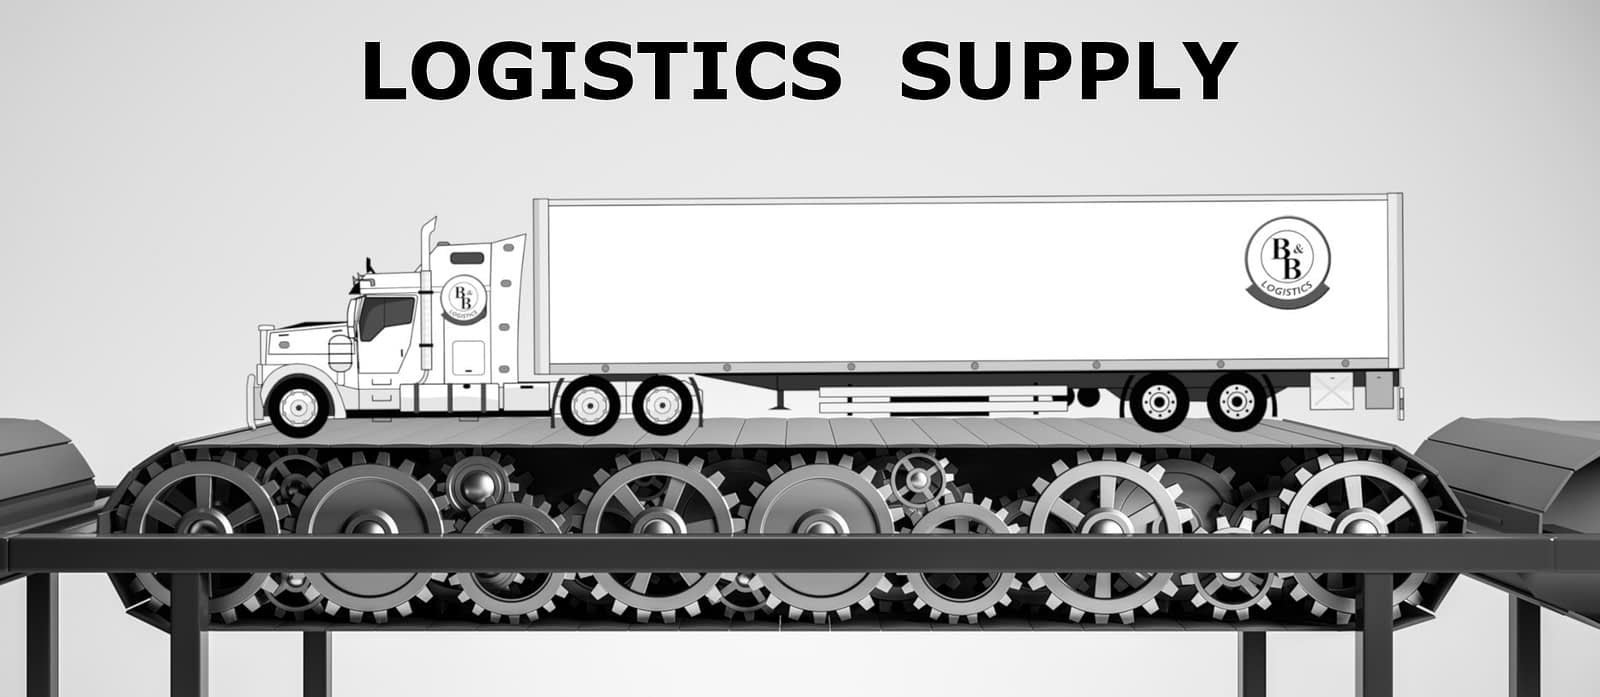 logistics supply bb semi truck